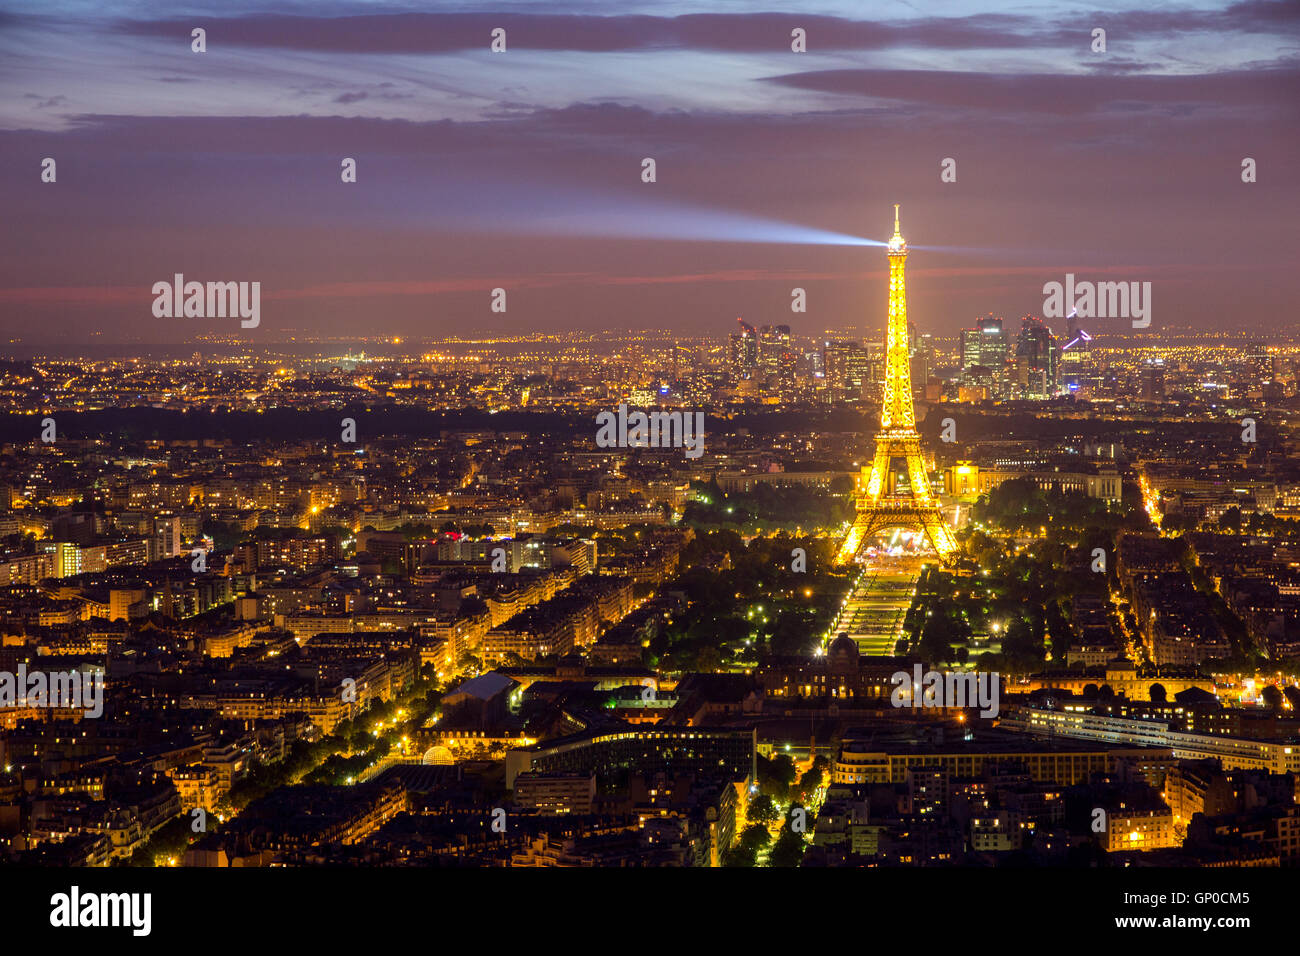 Evening view on Paris and the Eiffel Tower. - Stock Image